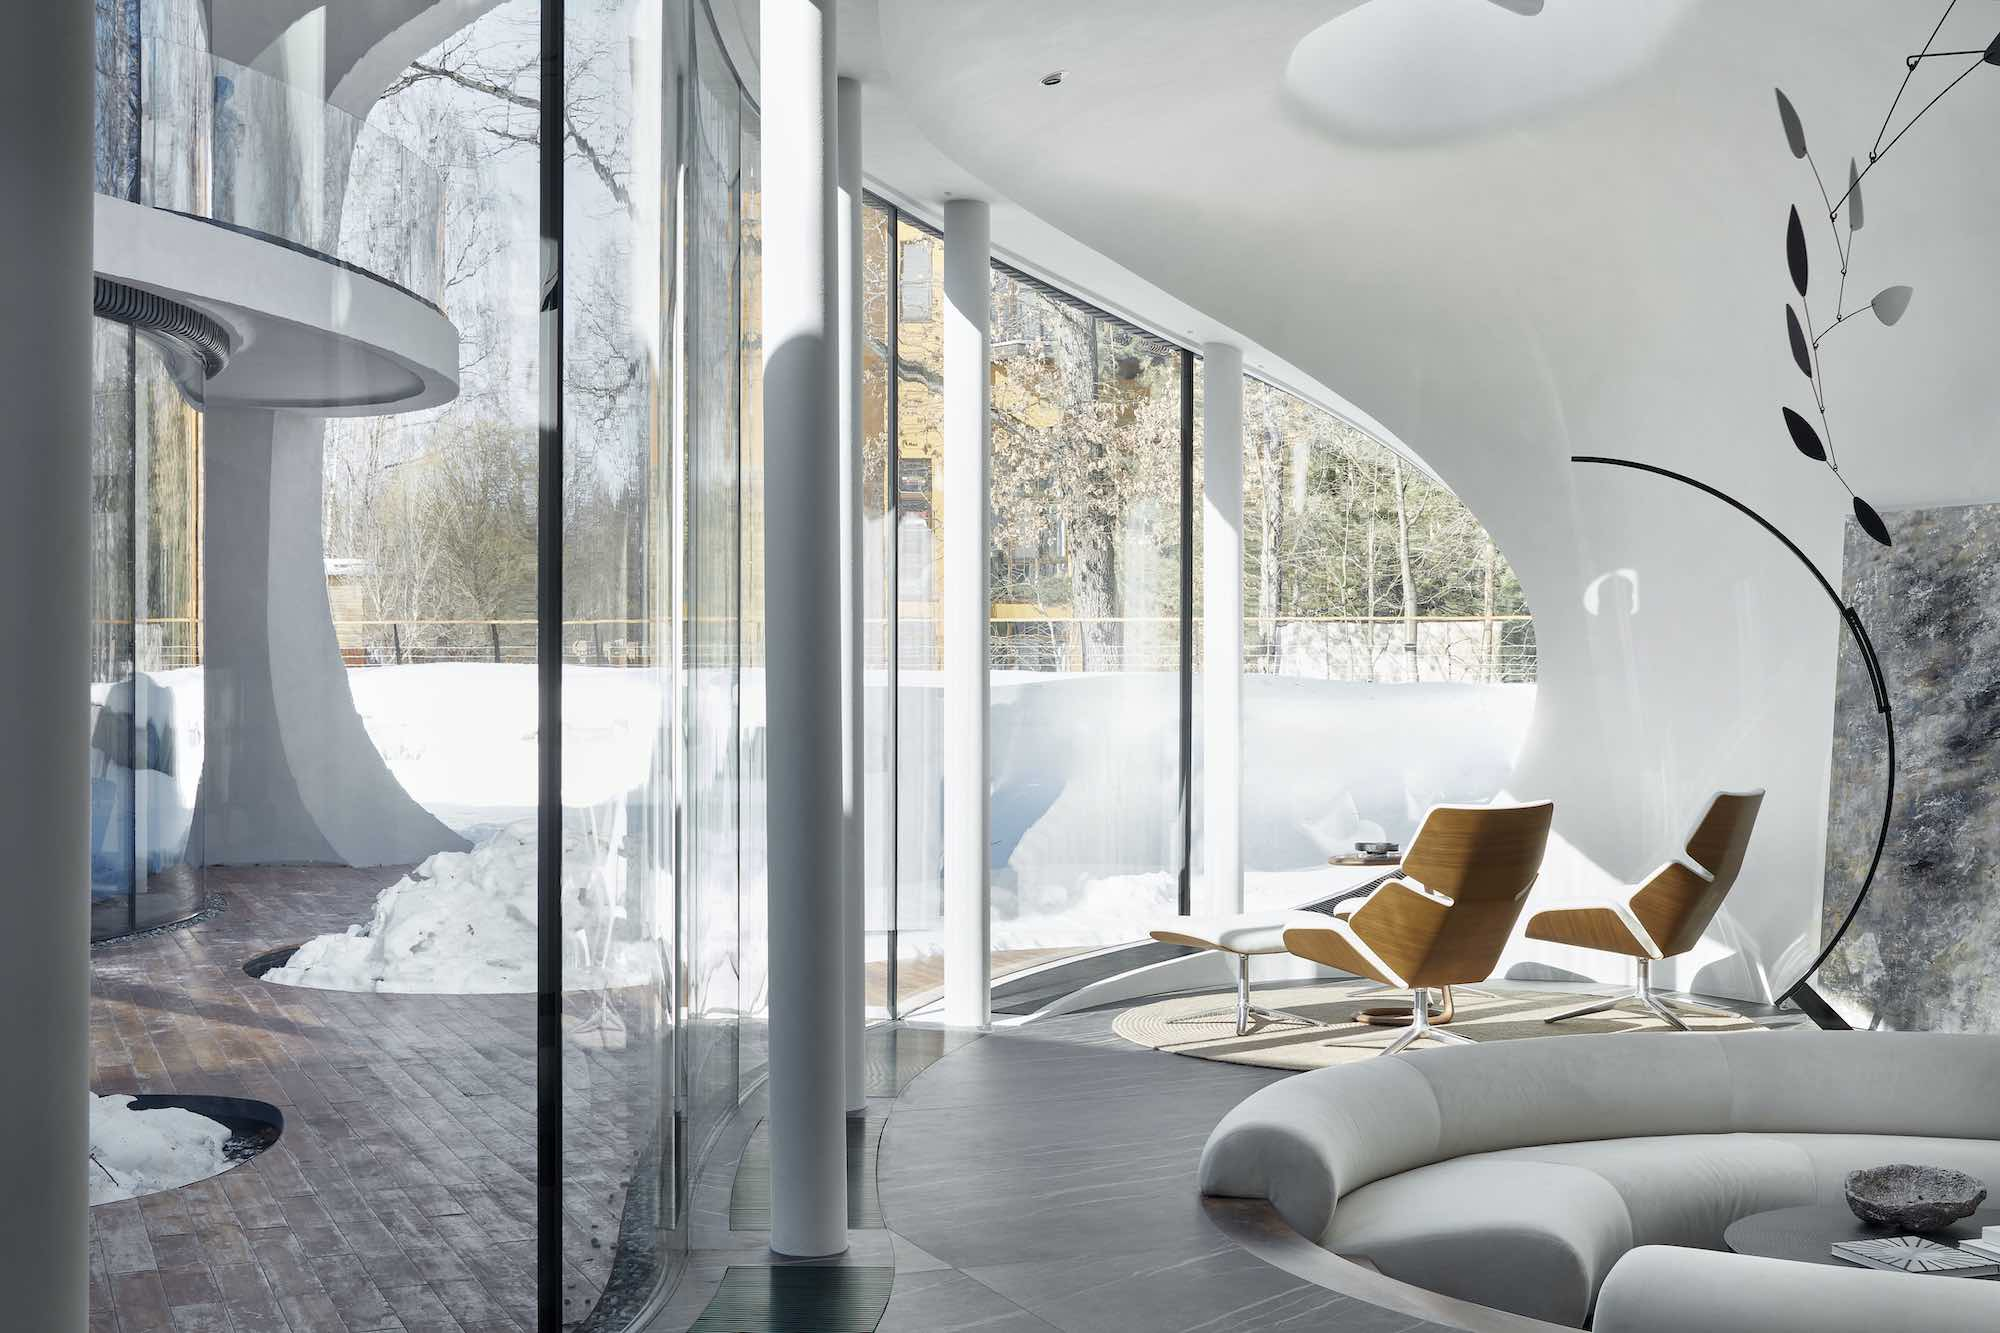 sunlight enter the house through curvy glass windows